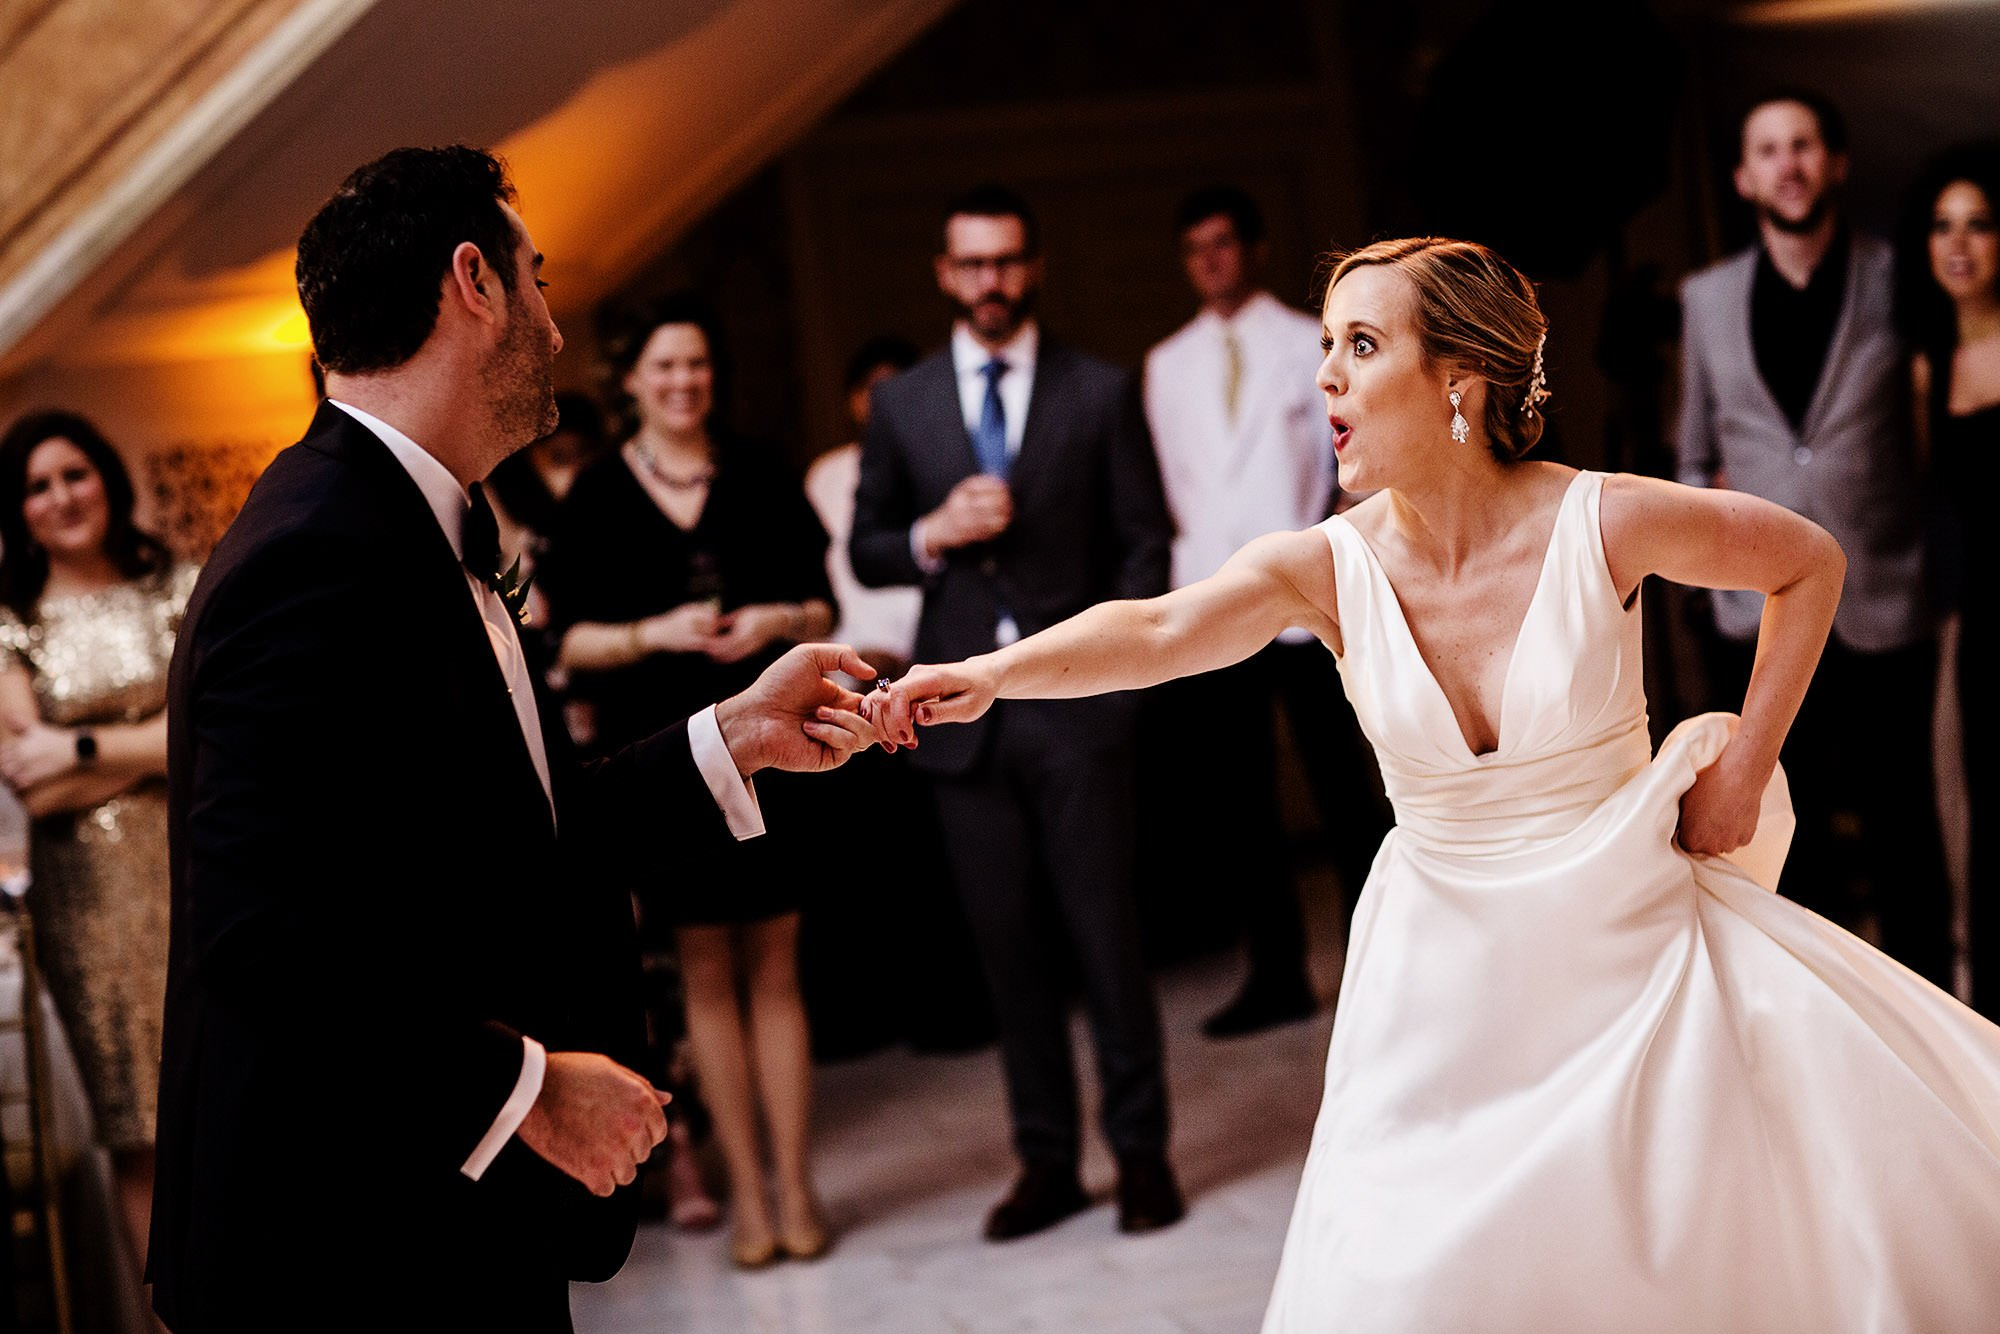 NMWA DC Wedding  I  The bride and groom share their first dance at National Museum of Women in the Arts in Washington, DC.